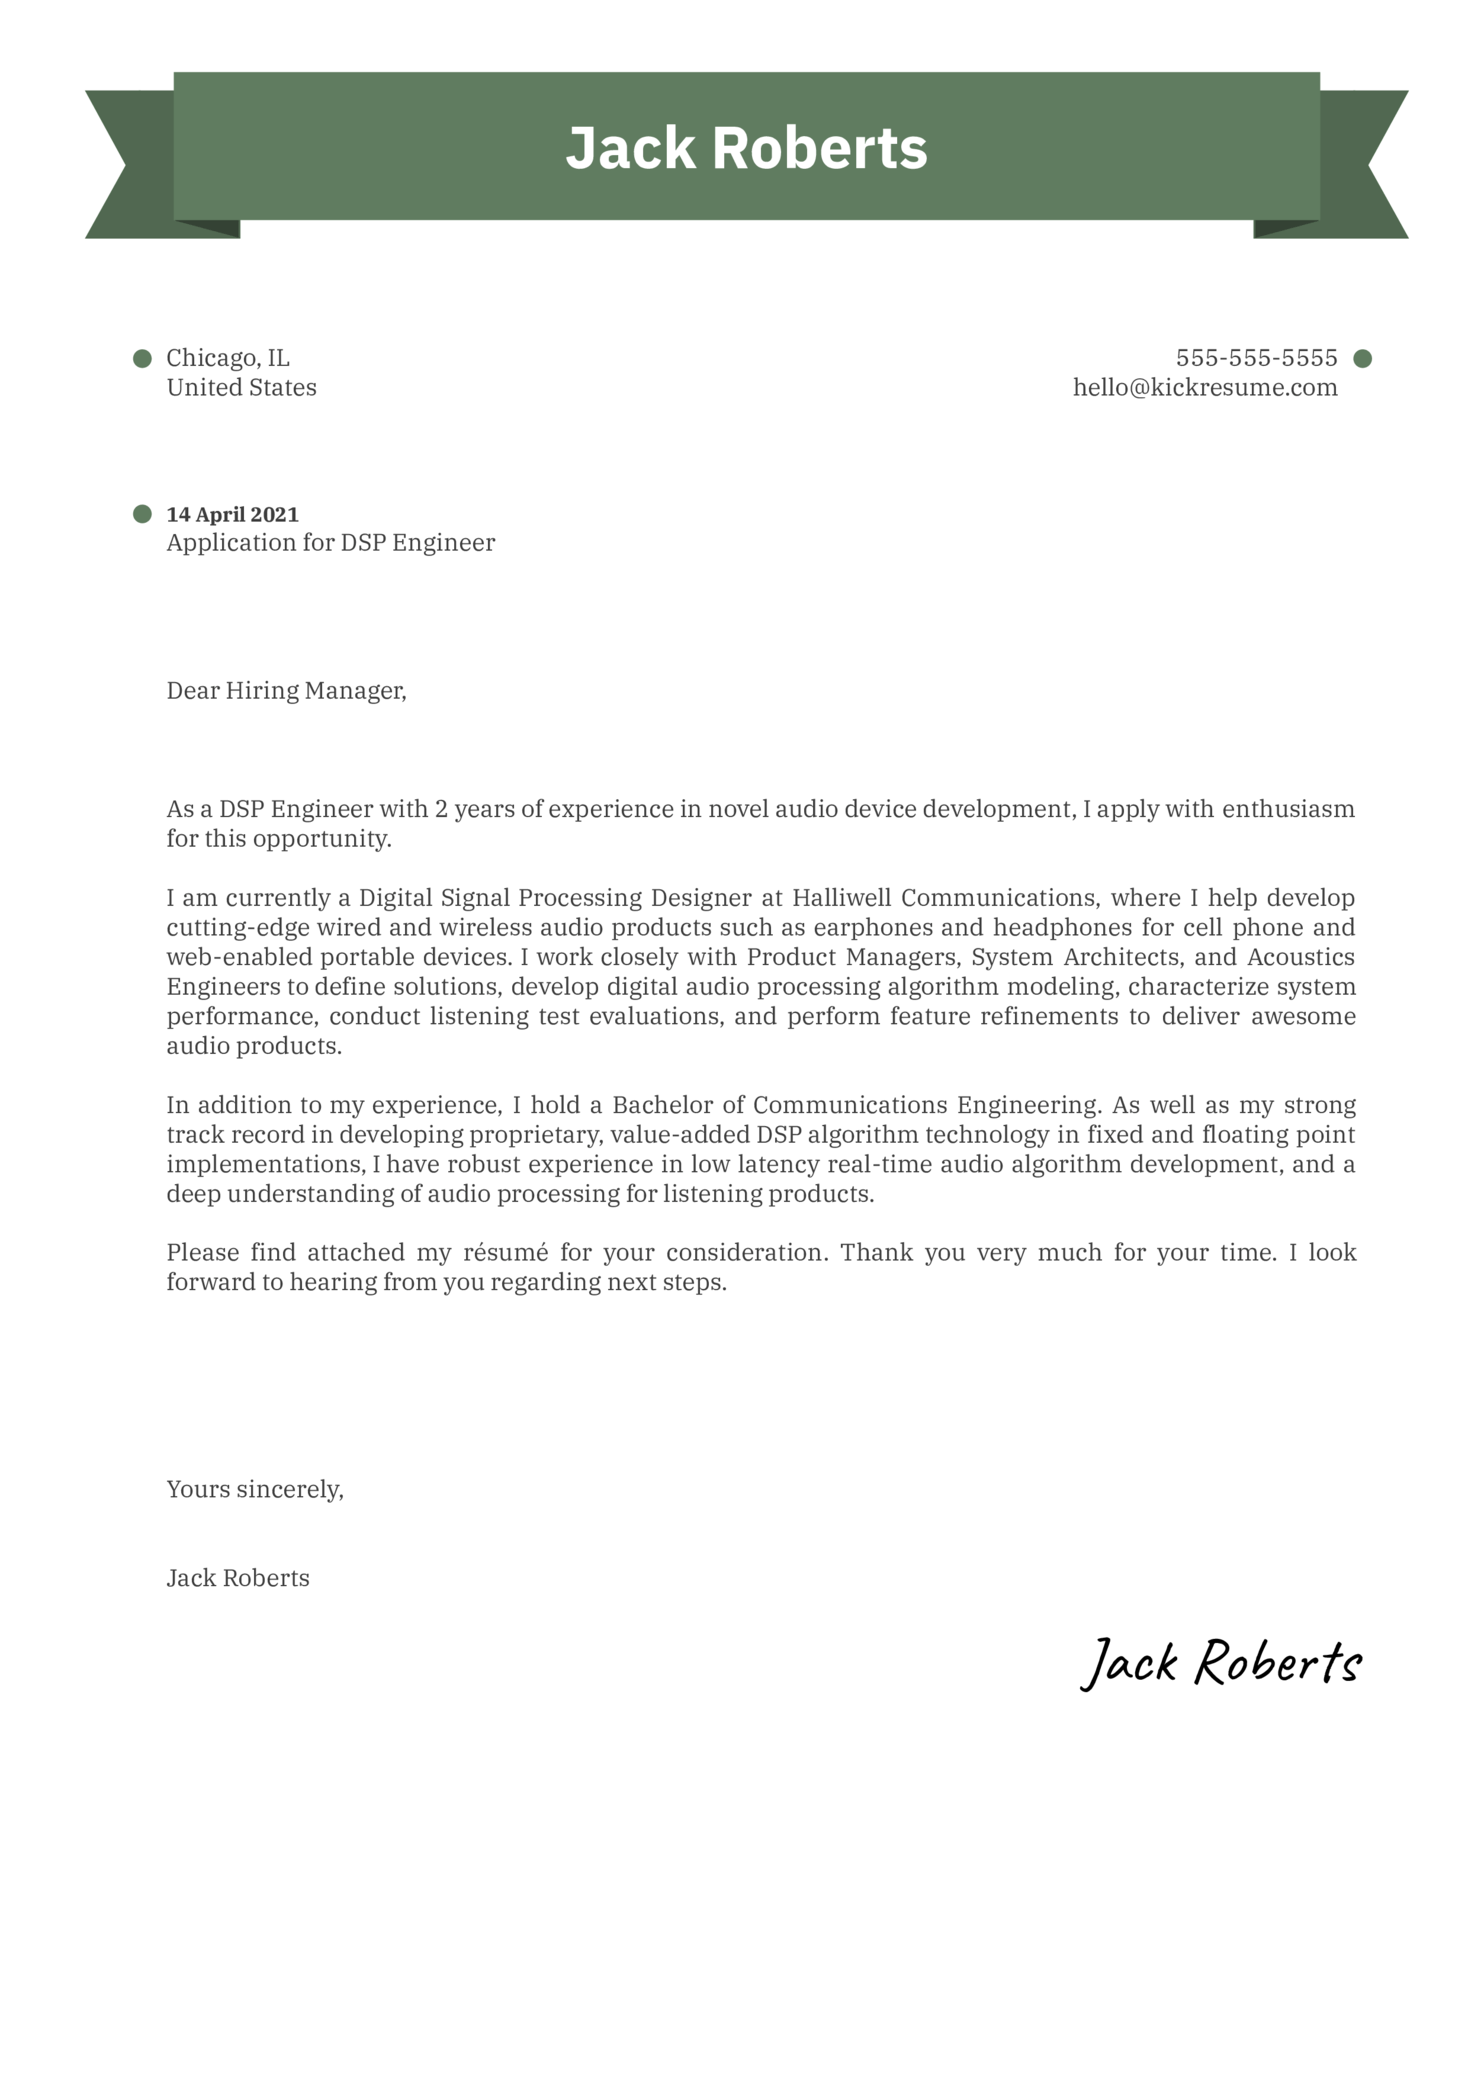 DSP Engineer Cover Letter Template